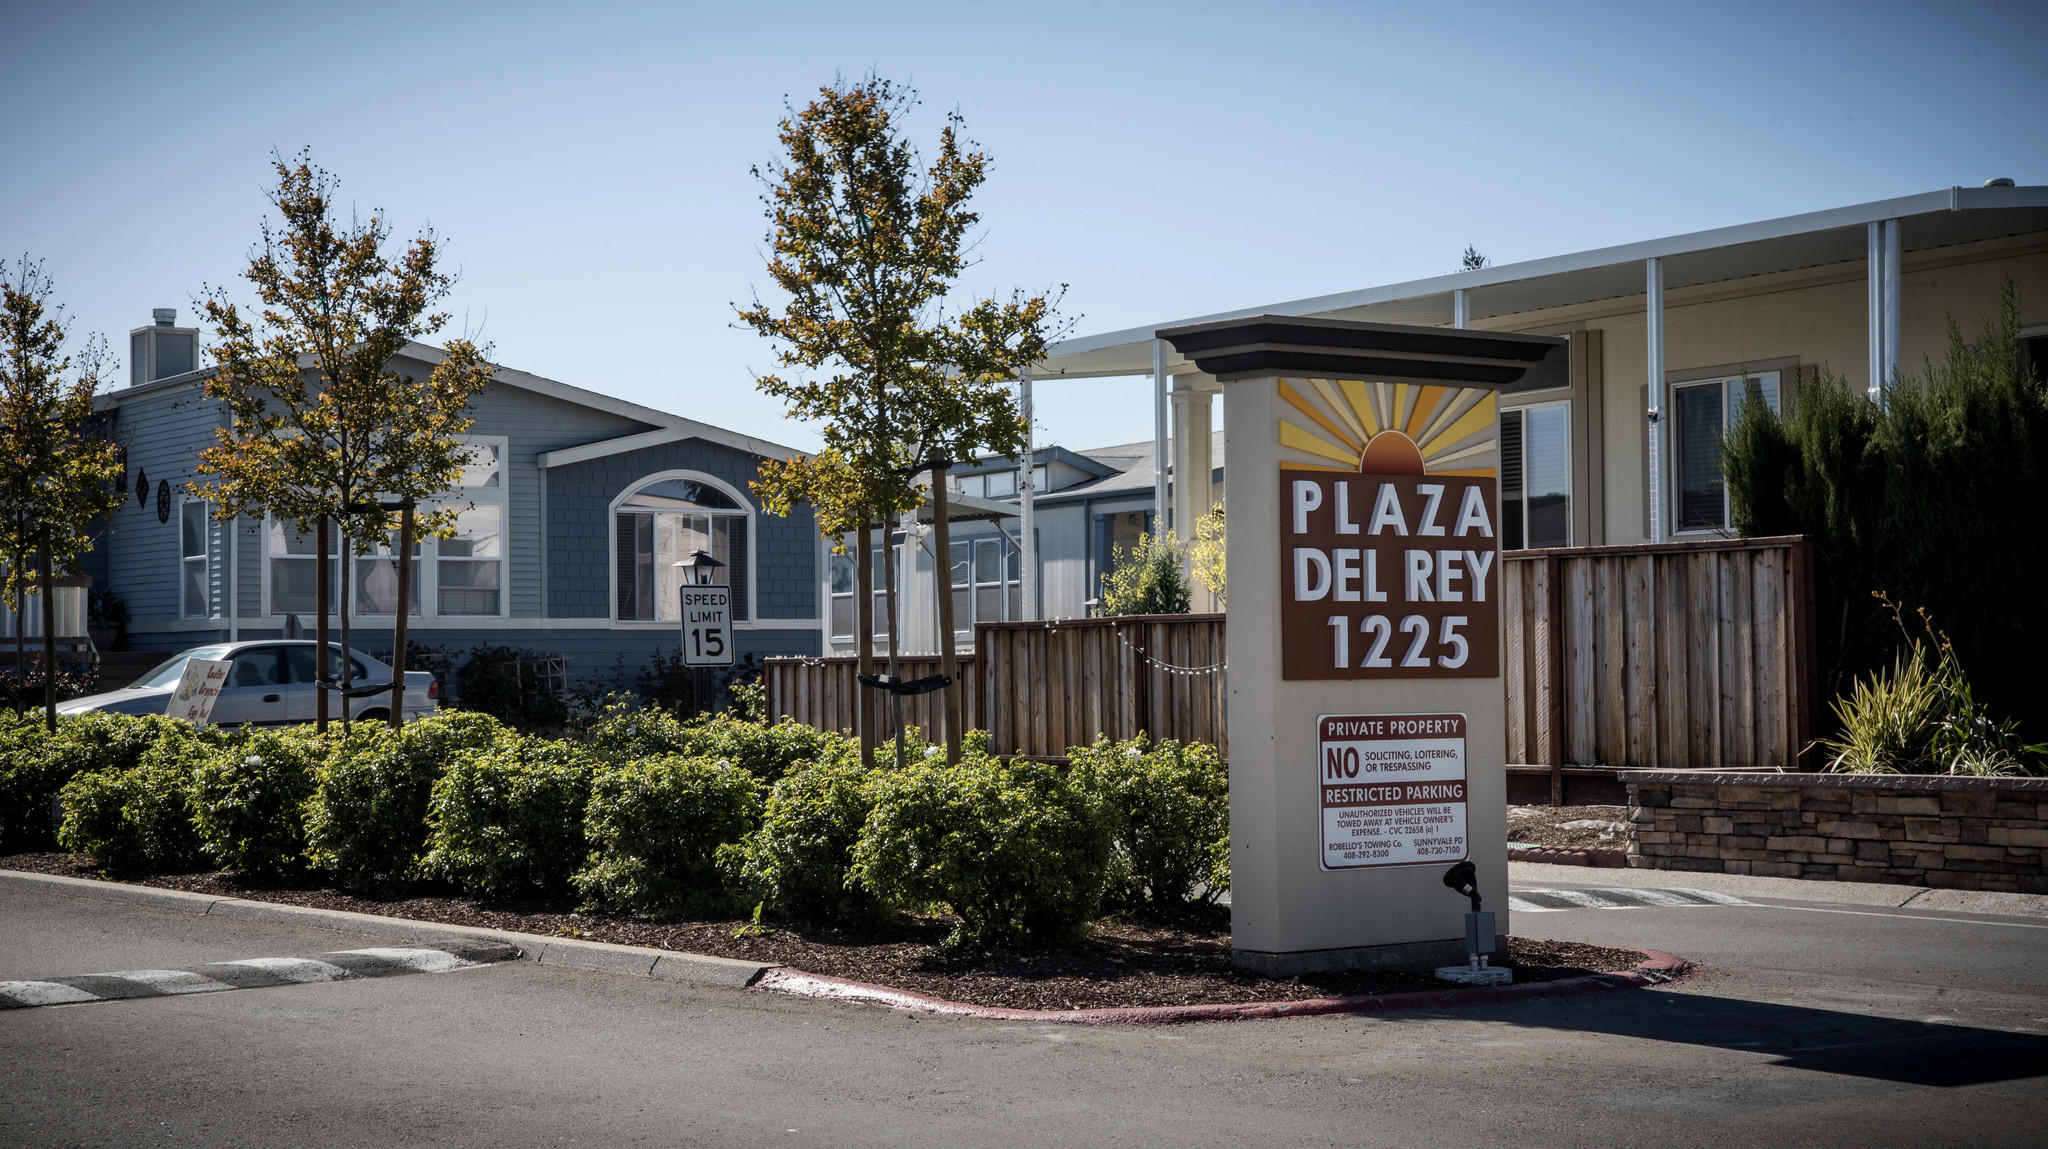 The Plaza Del Rey mobile home park in the heart of Silicon Valley was sold to a private equity firm two years ago. Residents now worry that rents will rise to levels that might force them to leave.